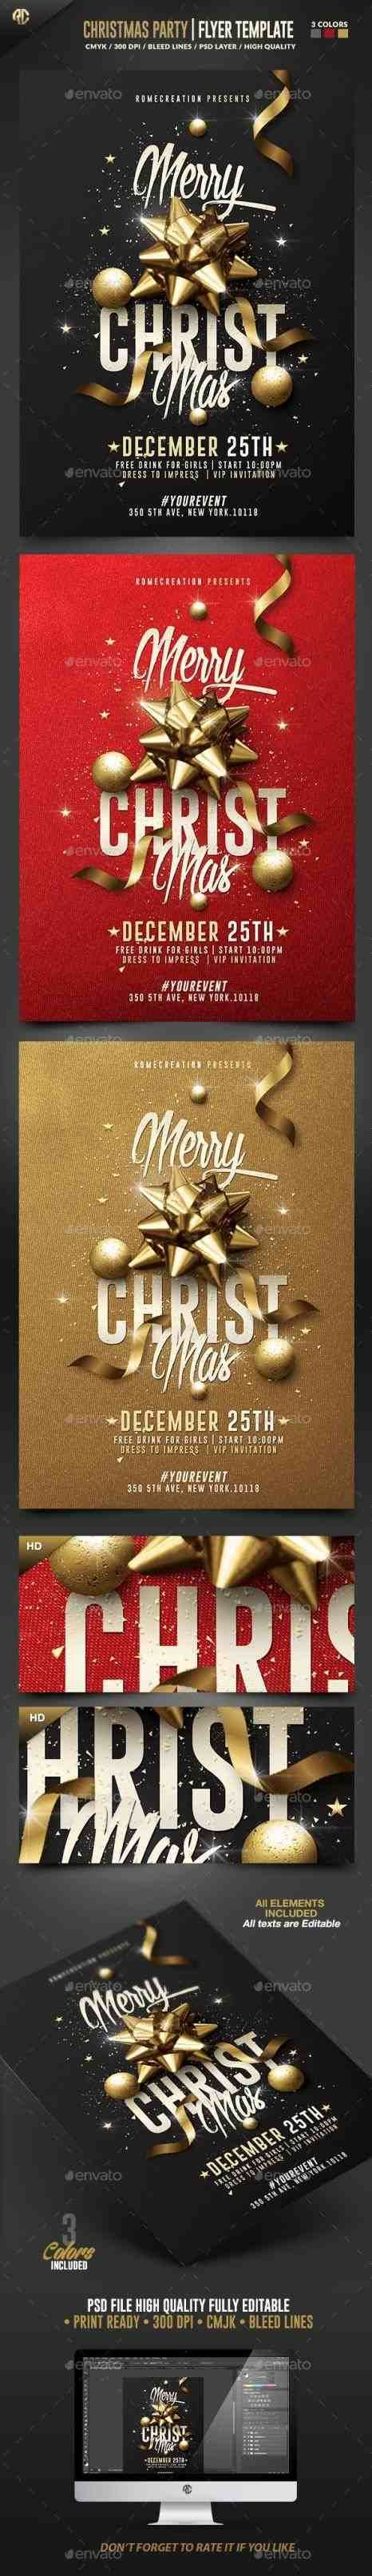 company christmas party invitation templates%0A New Post christmas party flyer background